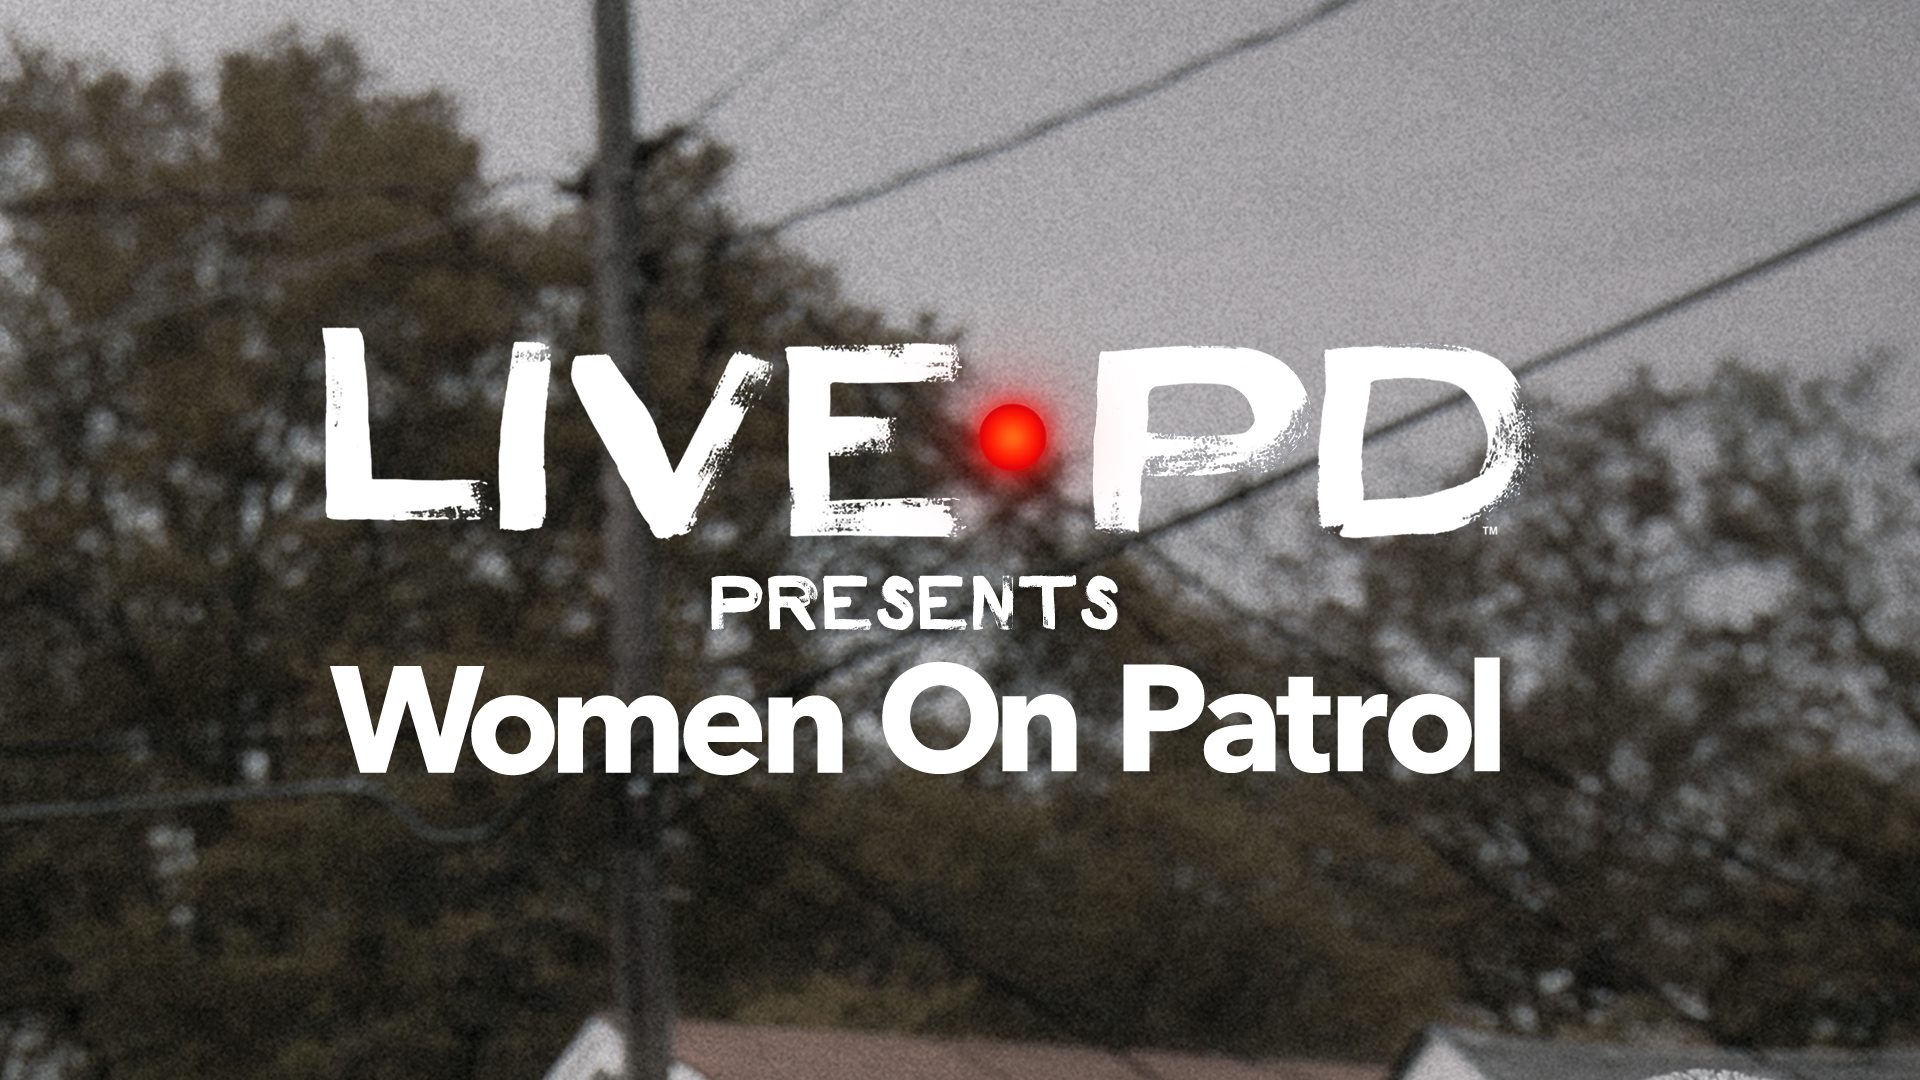 Live PD Presents: Women On Patrol Full Episodes, Video & More | Lifetime